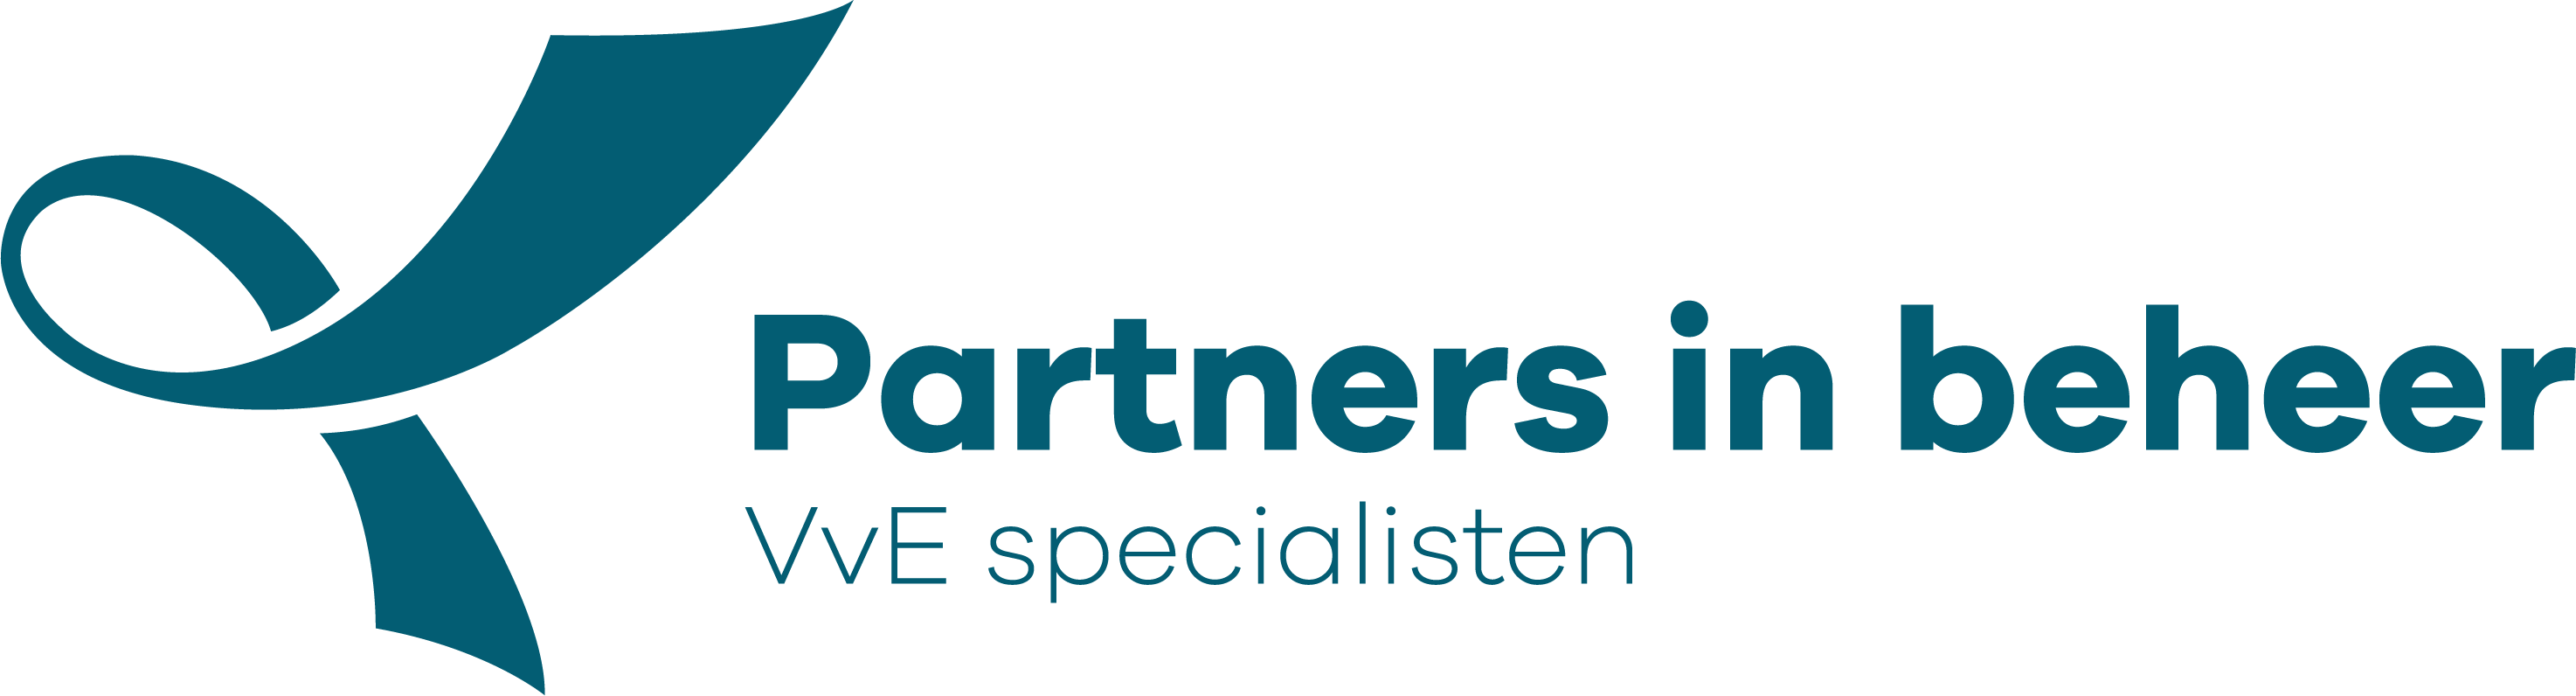 Partners in beheer